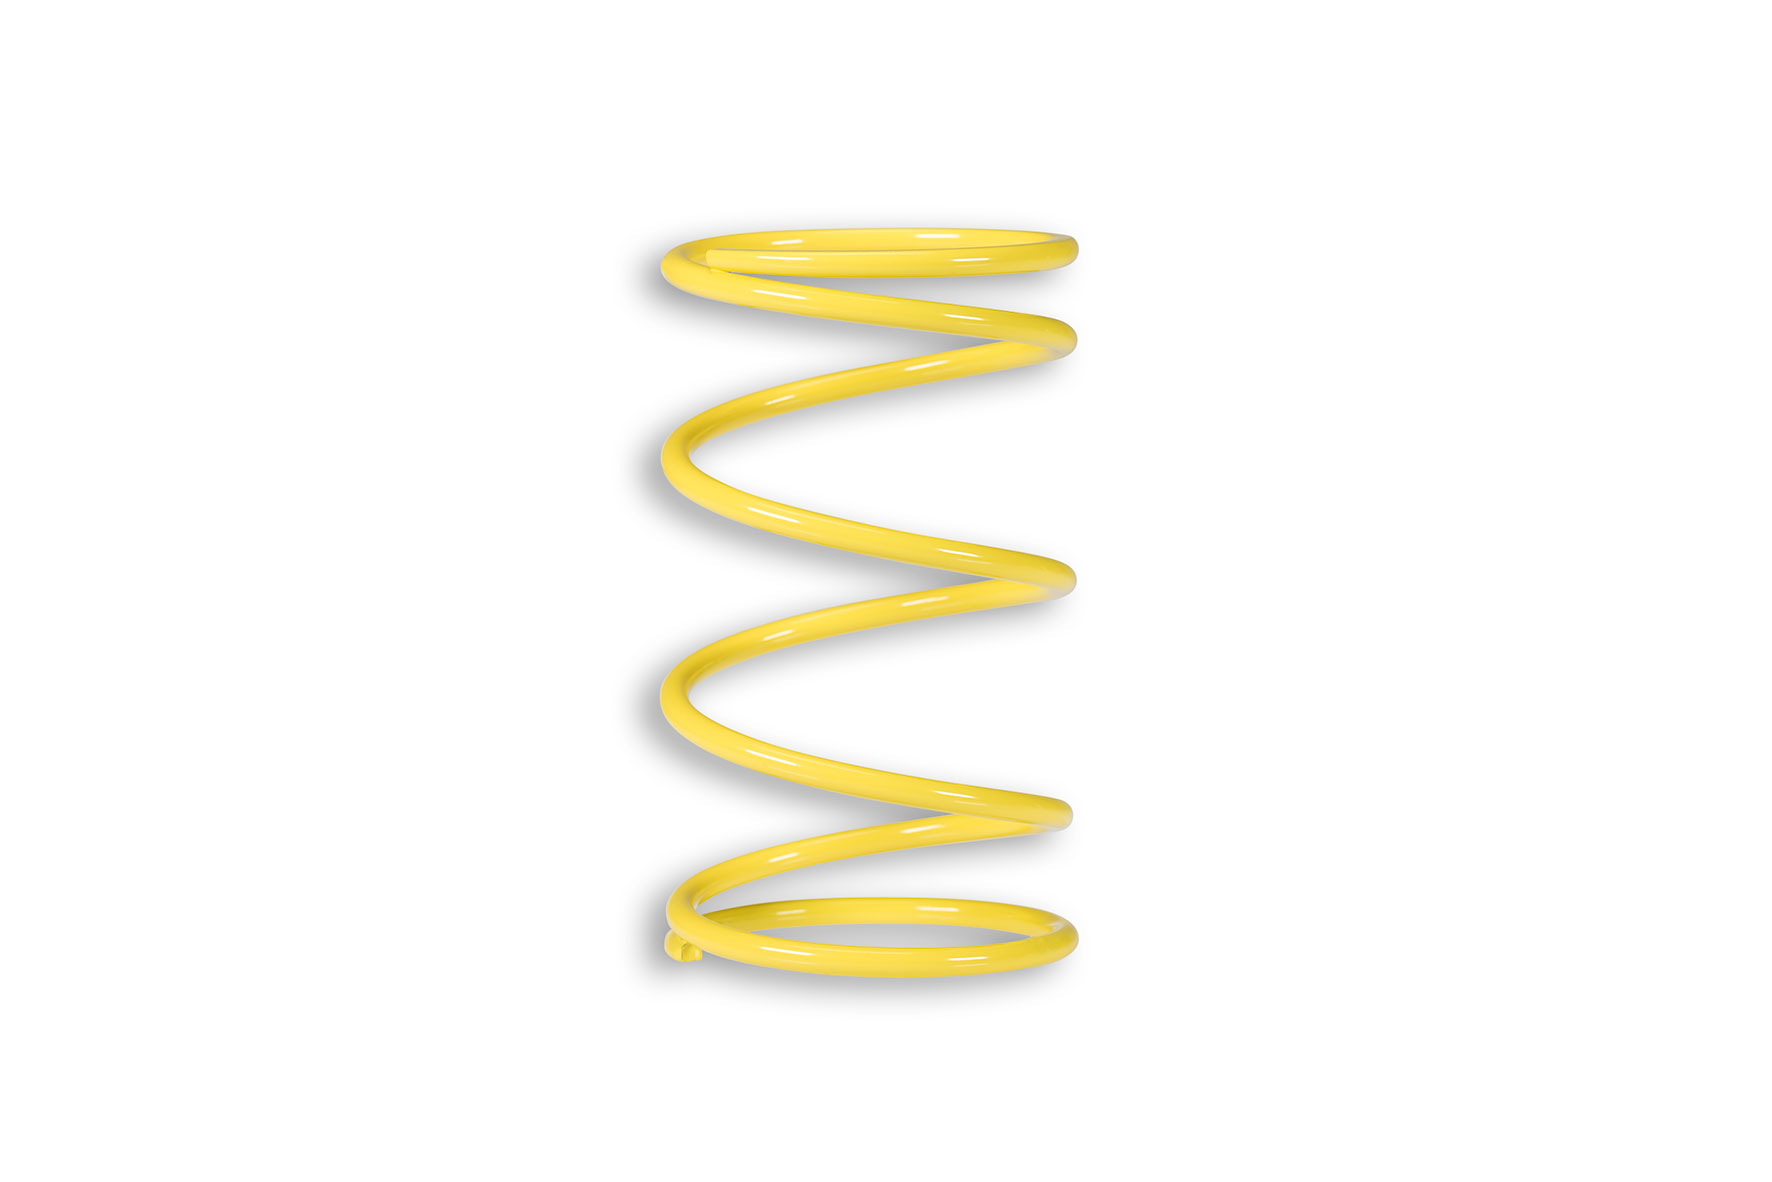 YELLOW VARIATOR ADJUSTER SPRING ext.Ø 65x112mm thread Ø 4,6mm 6,8k